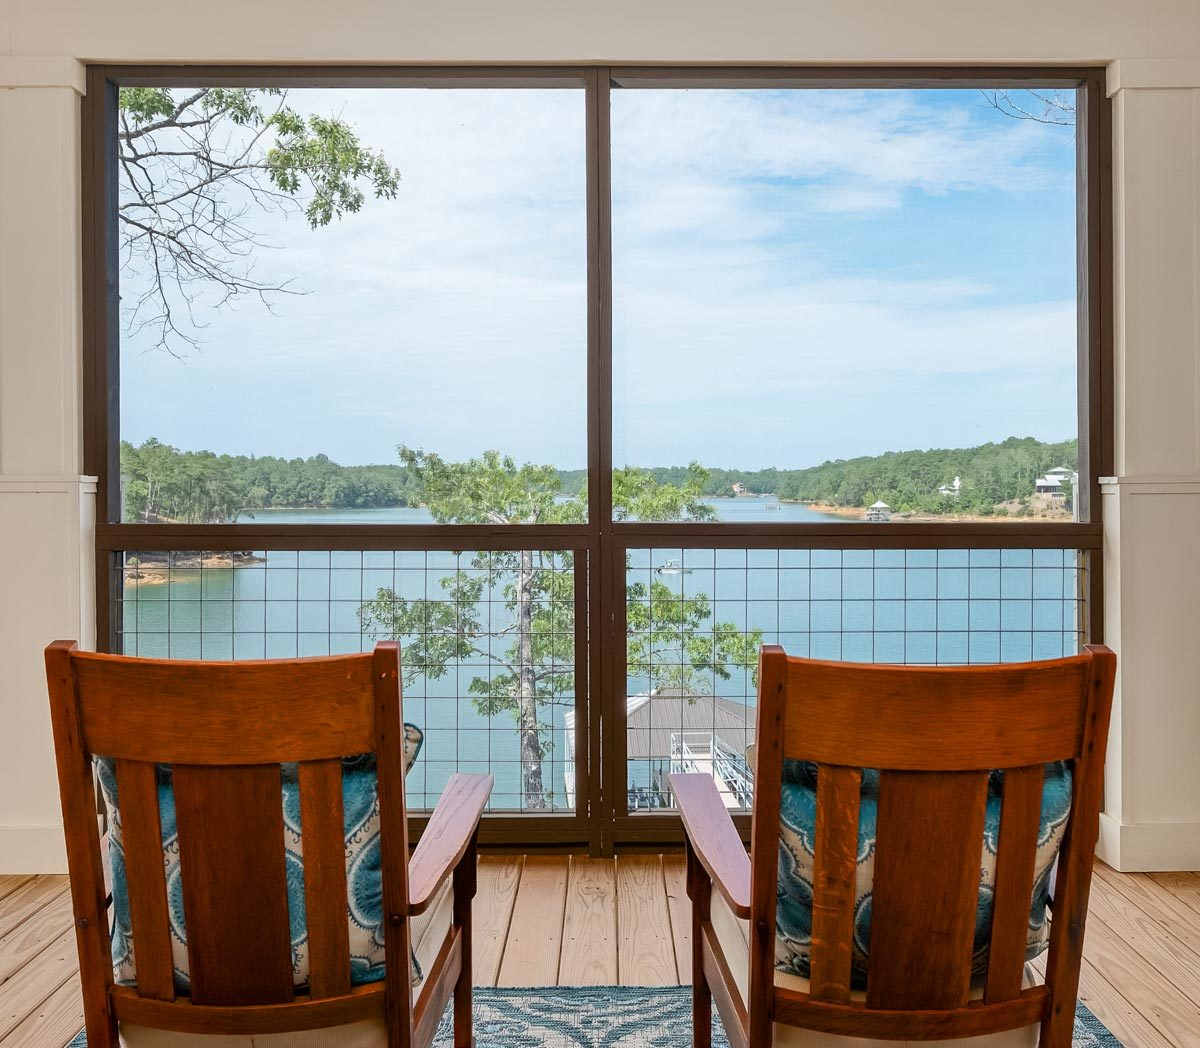 Here, you have wooden rocking chairs and a breathtaking view of the lake.